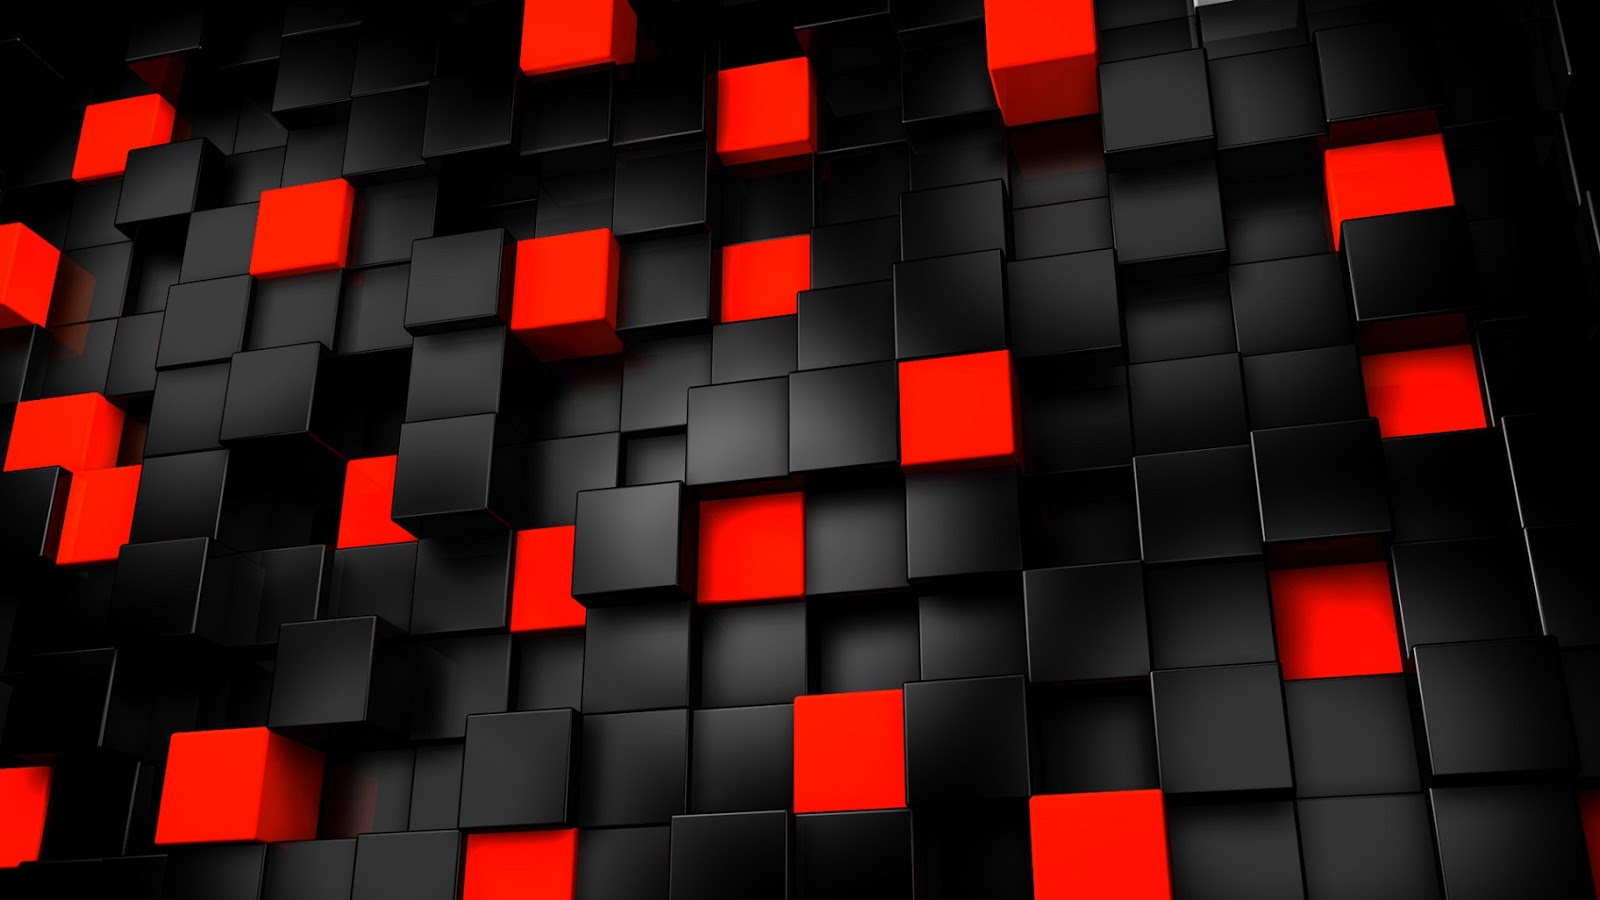 Cool Red And Black Wallpapers